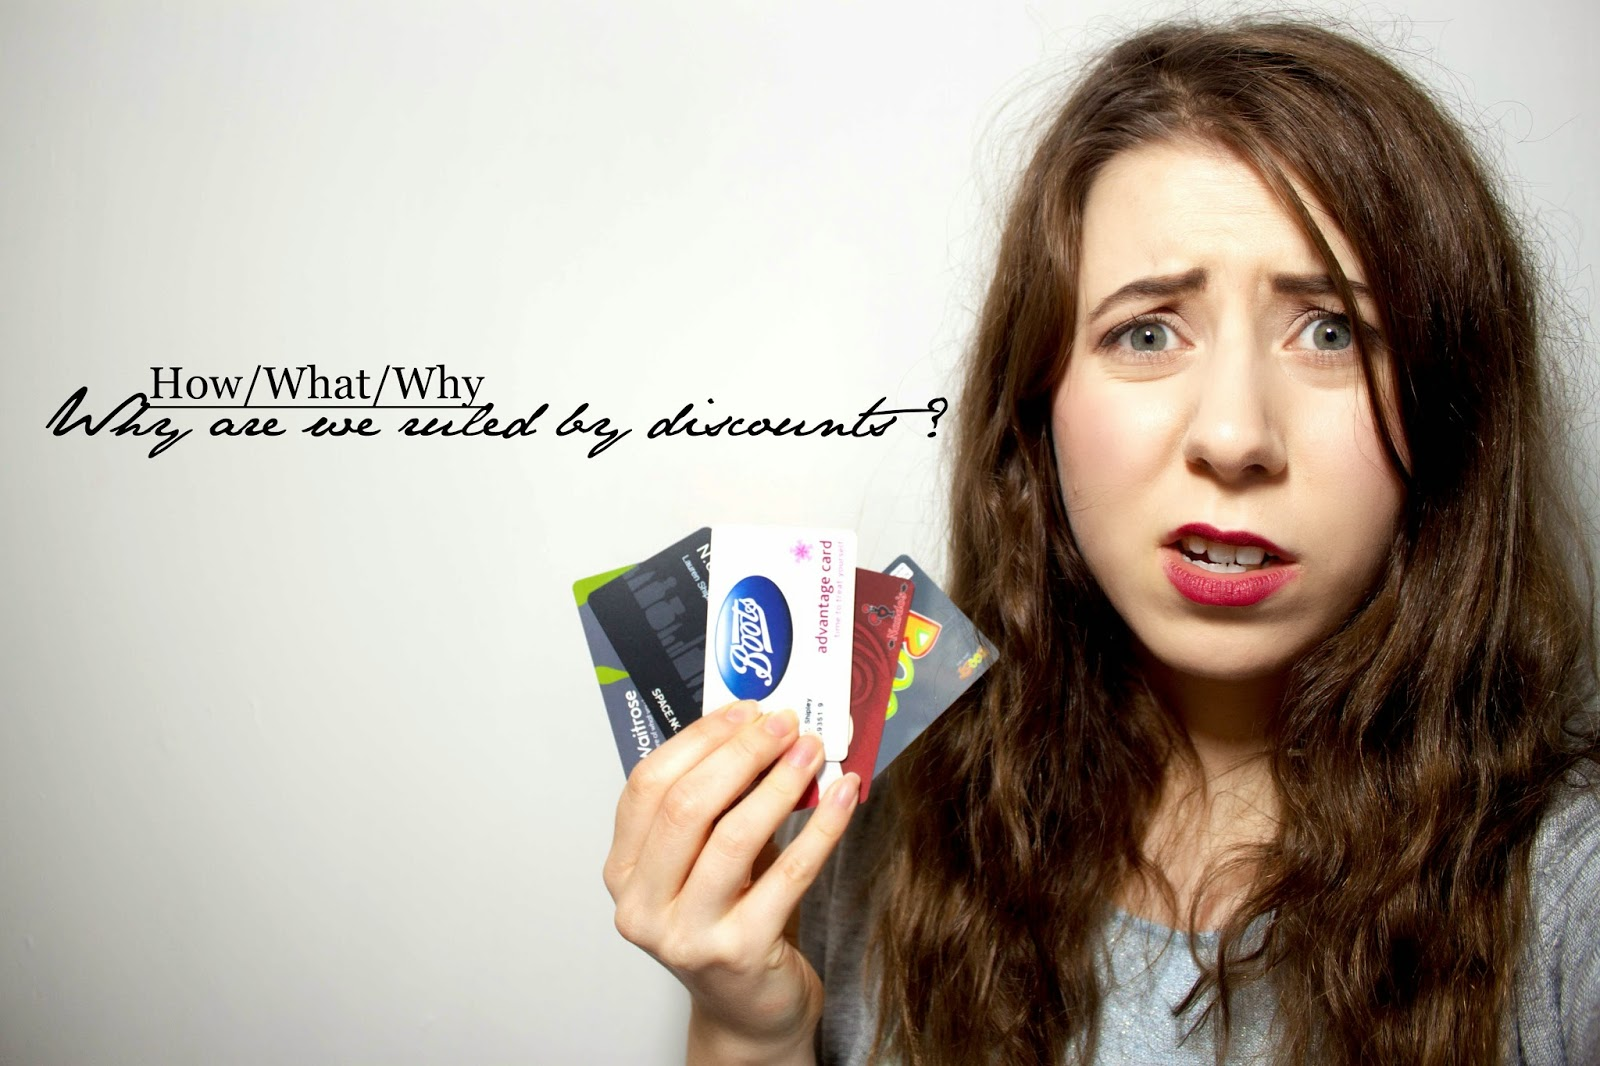 HOW/WHAT/WHY : WHY ARE WE RULED BY DISCOUNTS ?